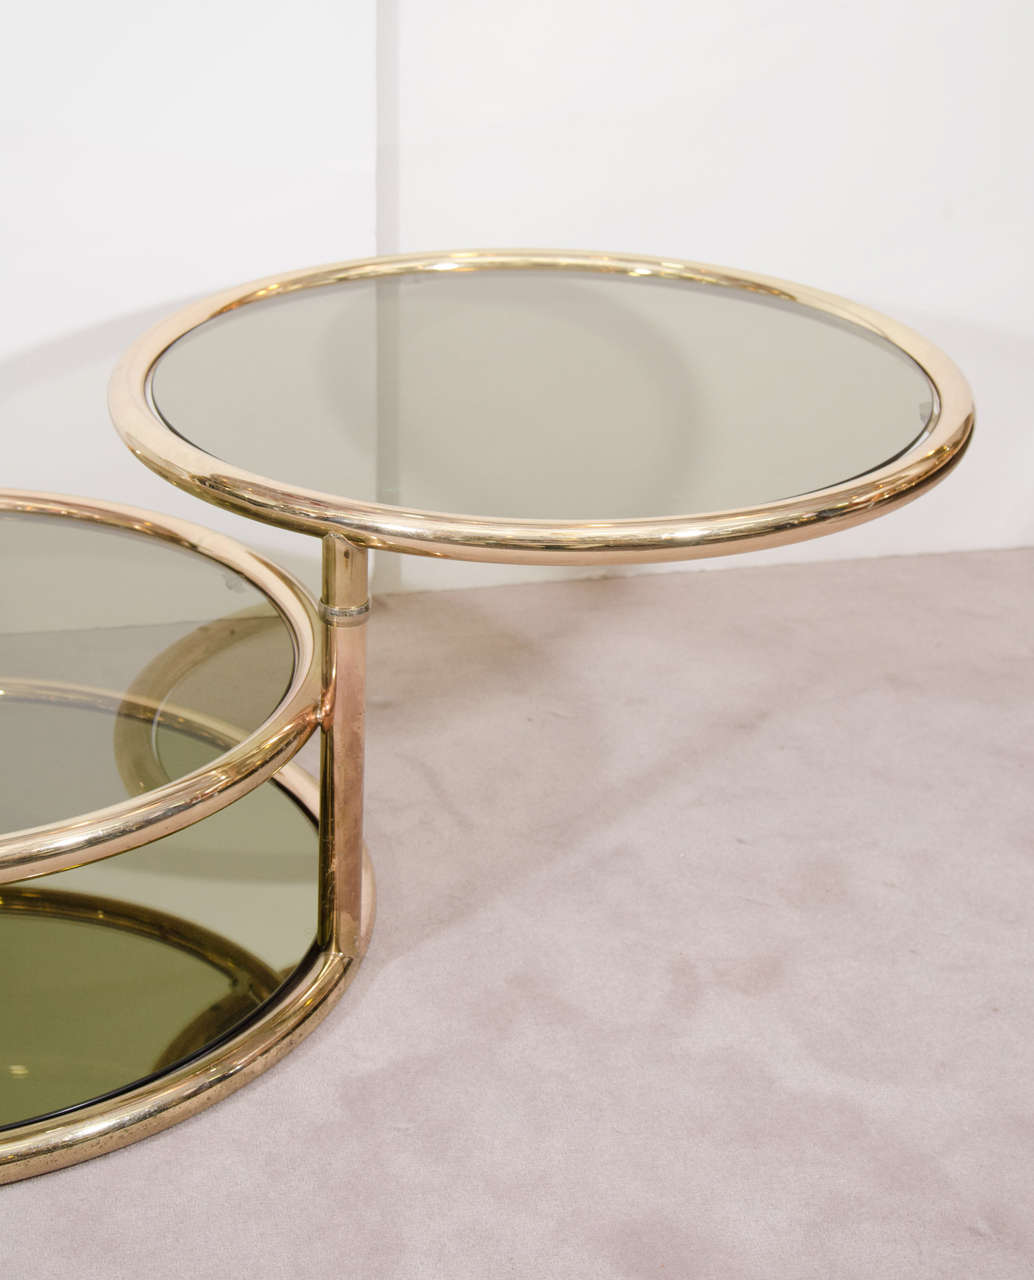 Midcentury Milo Baughman Style Brass Swivel Coffee Or Cocktail Table At 1stdibs